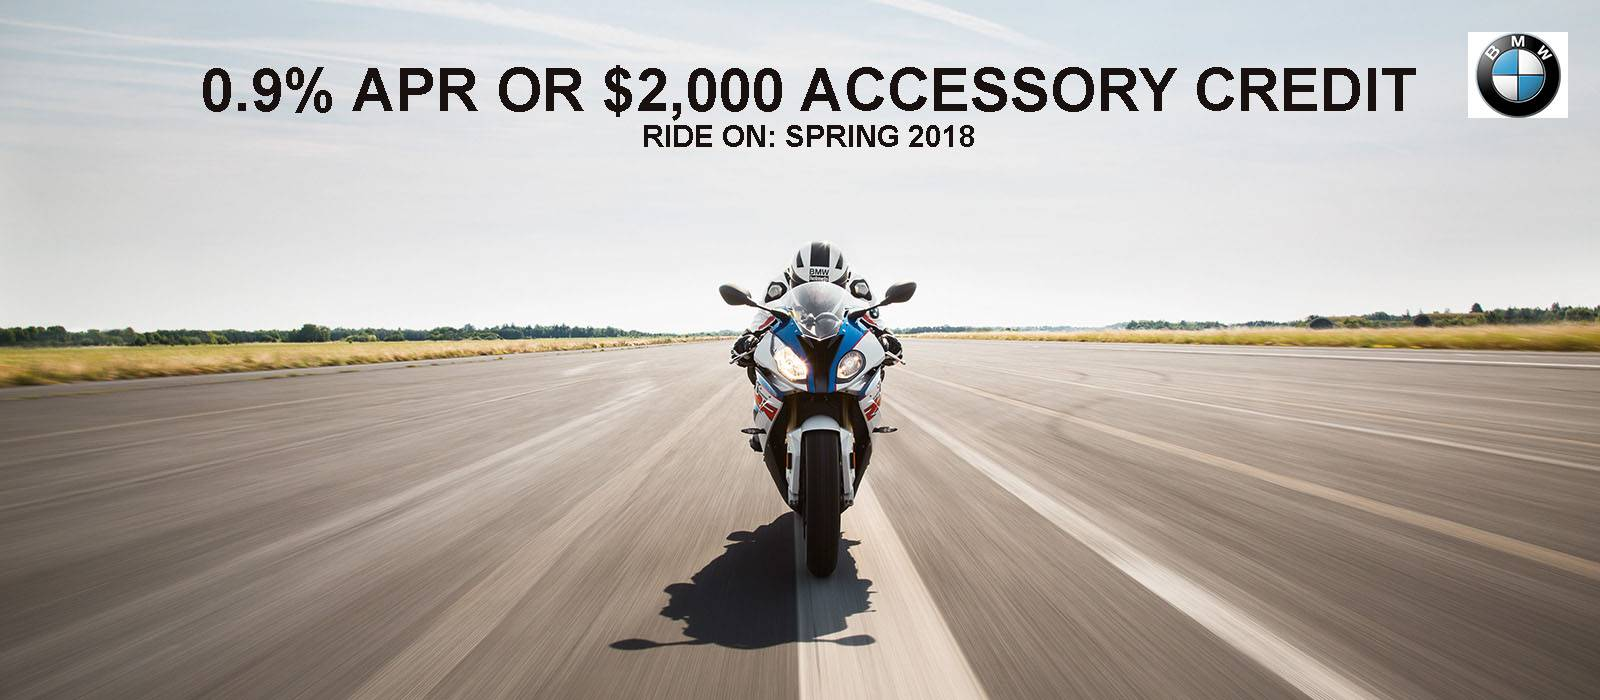 BMW - 0.9% APR OR $2,000 ACCESSORY CREDIT